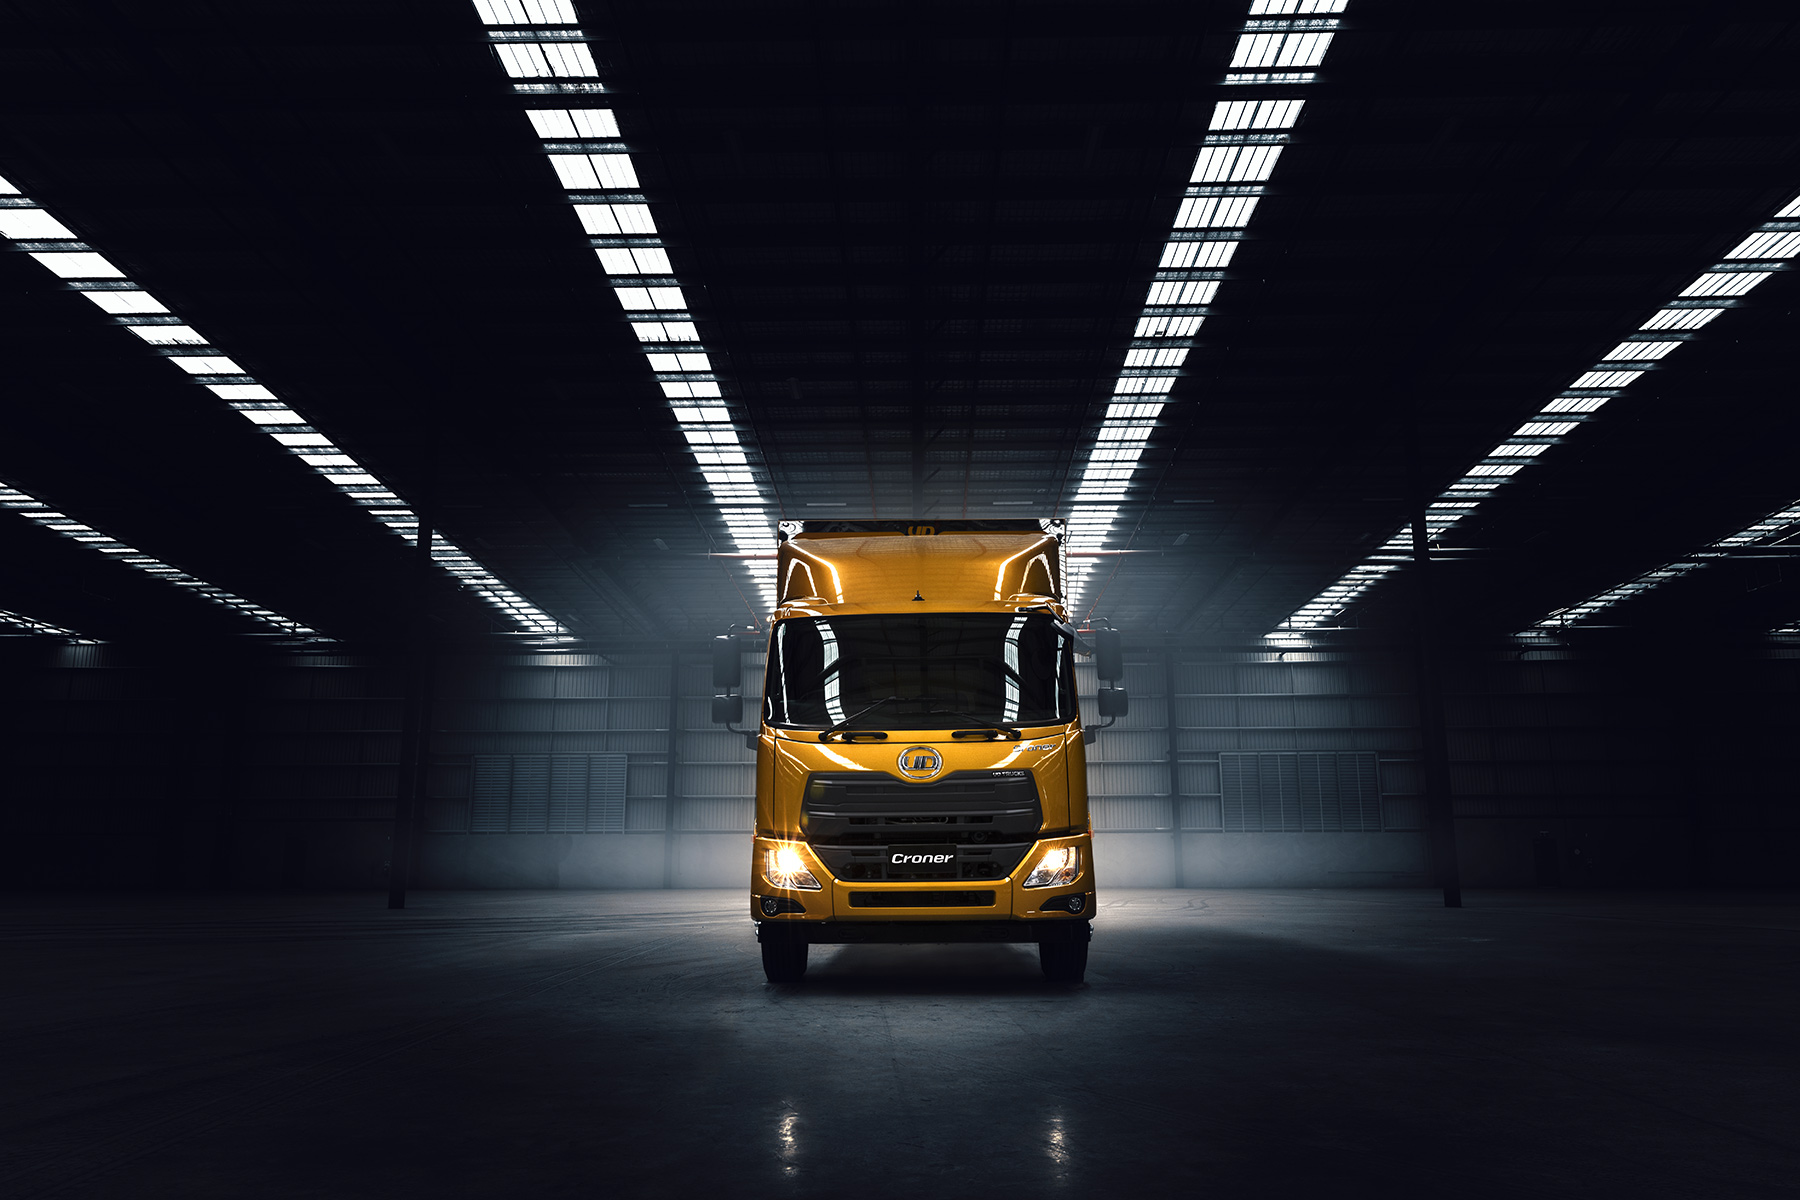 UD Trucks Quon in empty warehouse